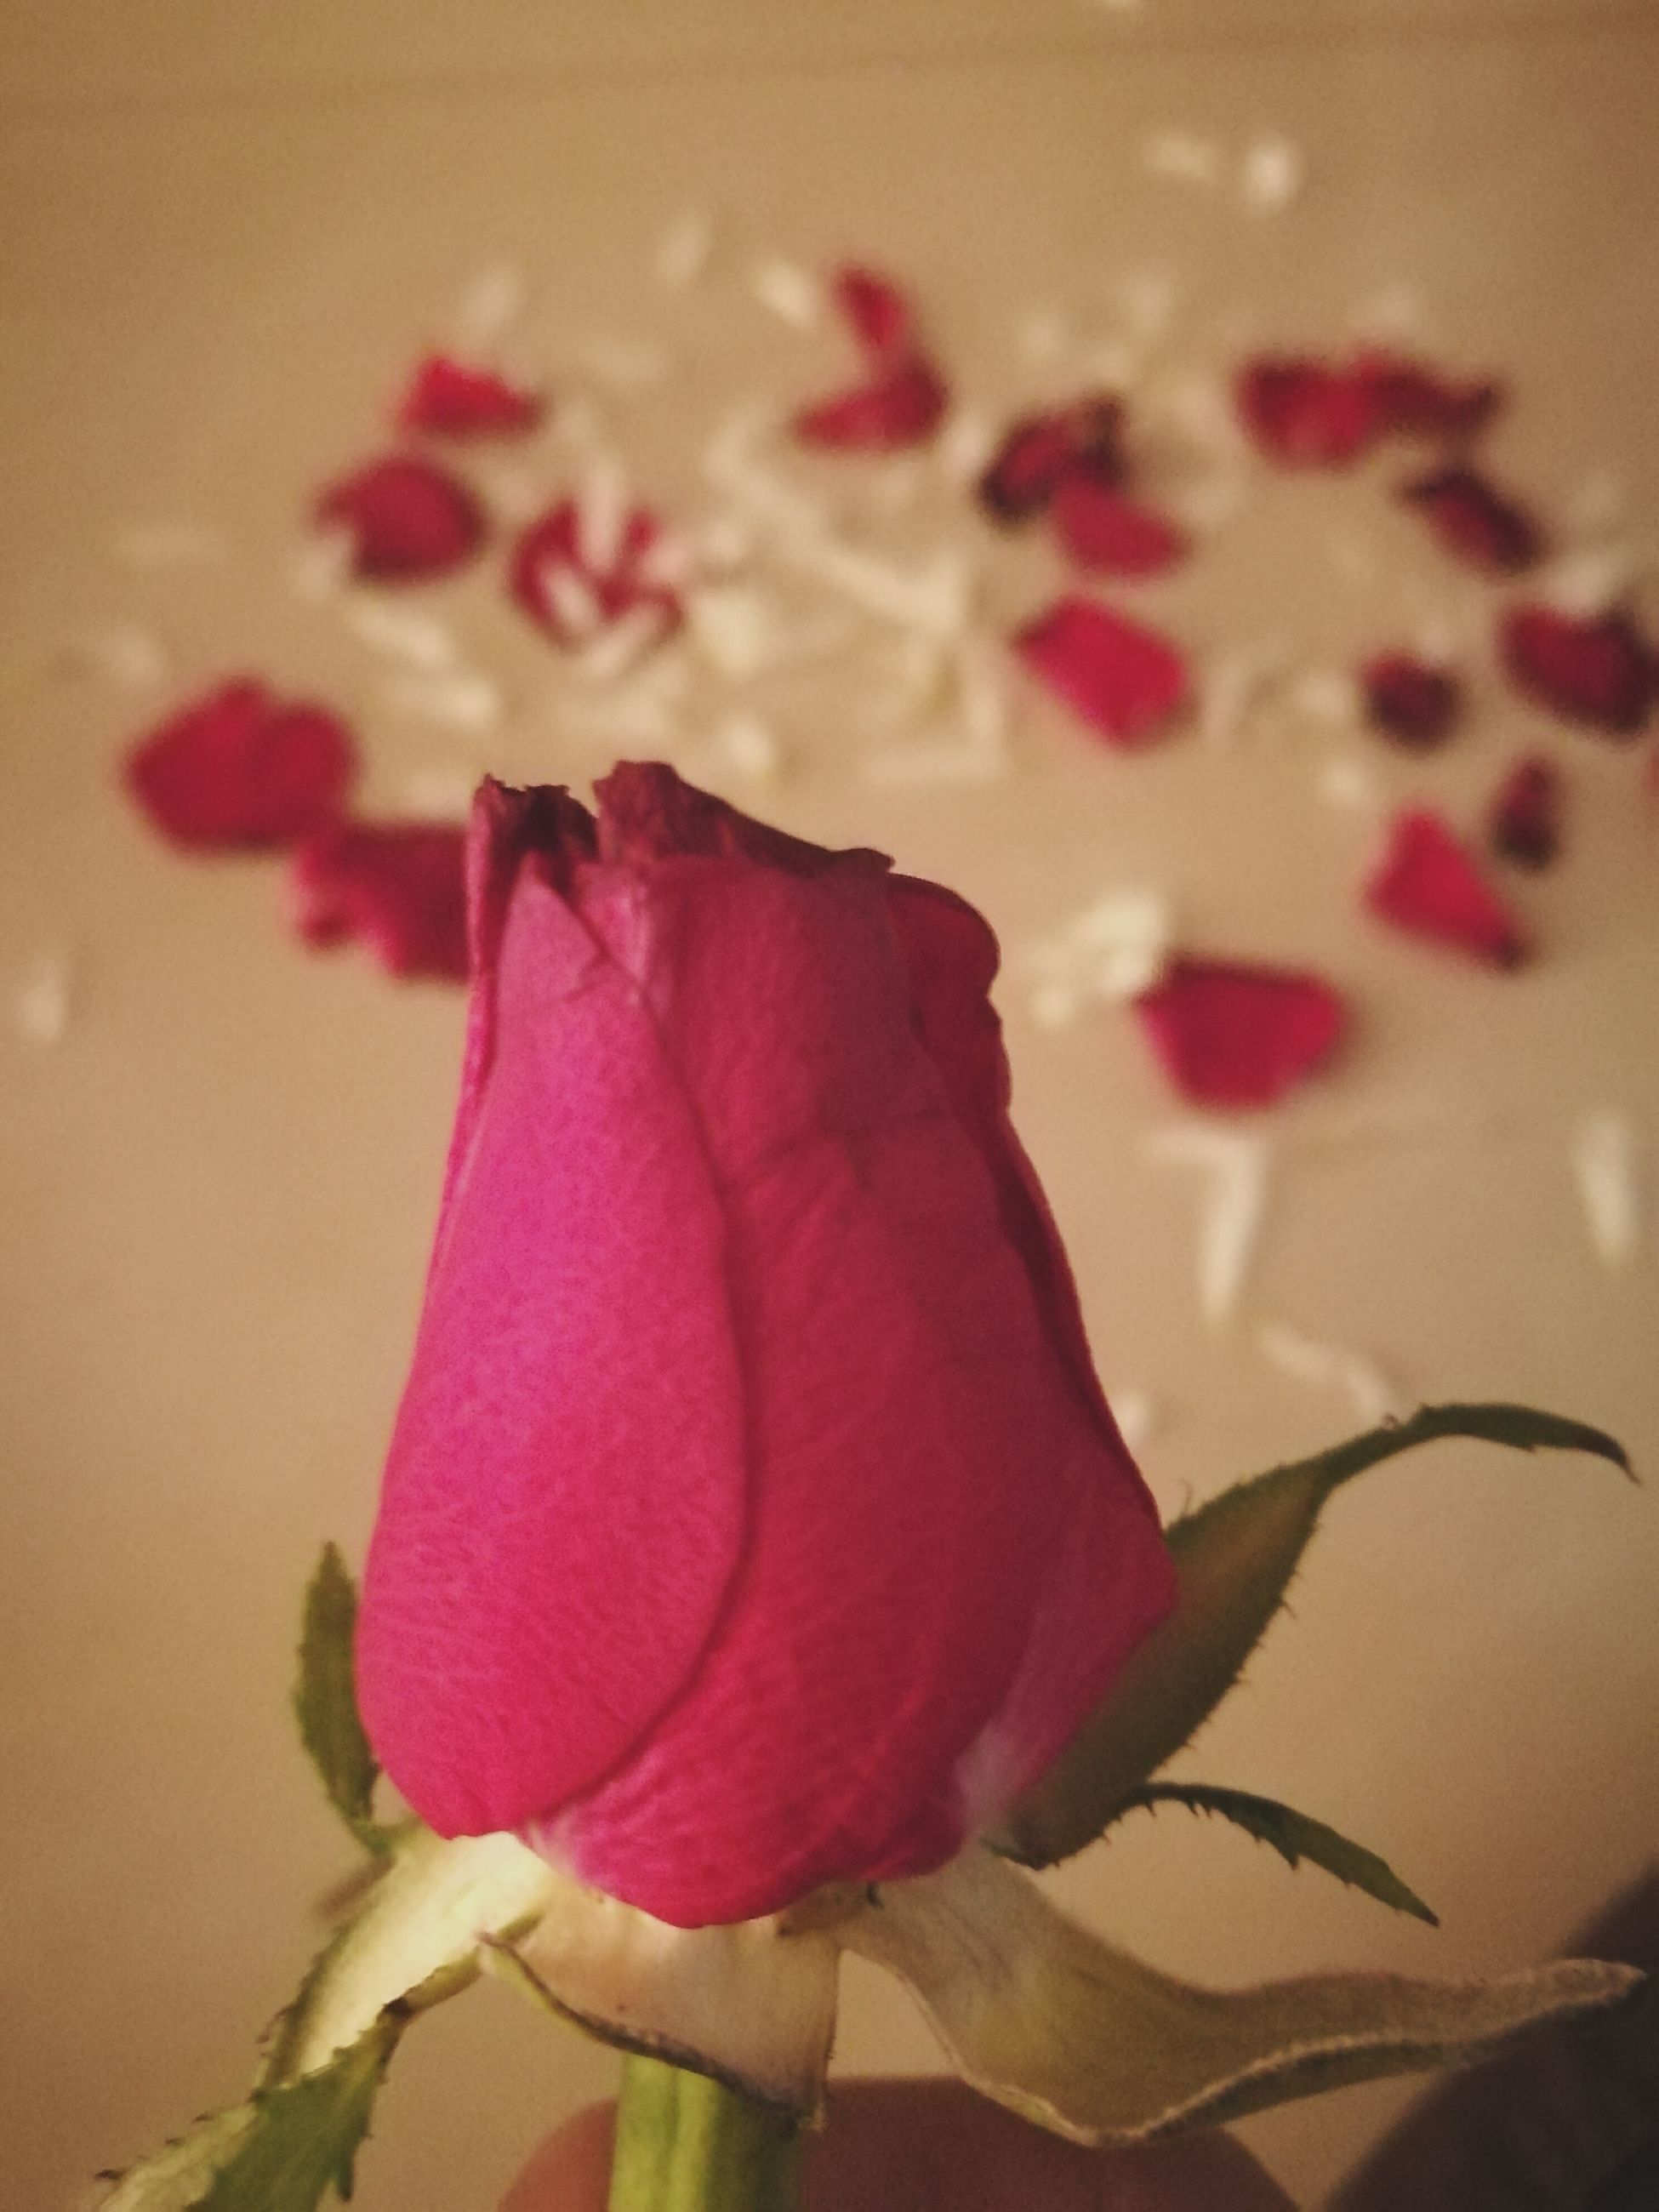 flower, petal, flower head, fragility, rose - flower, beauty in nature, freshness, red, close-up, nature, no people, pink color, indoors, day